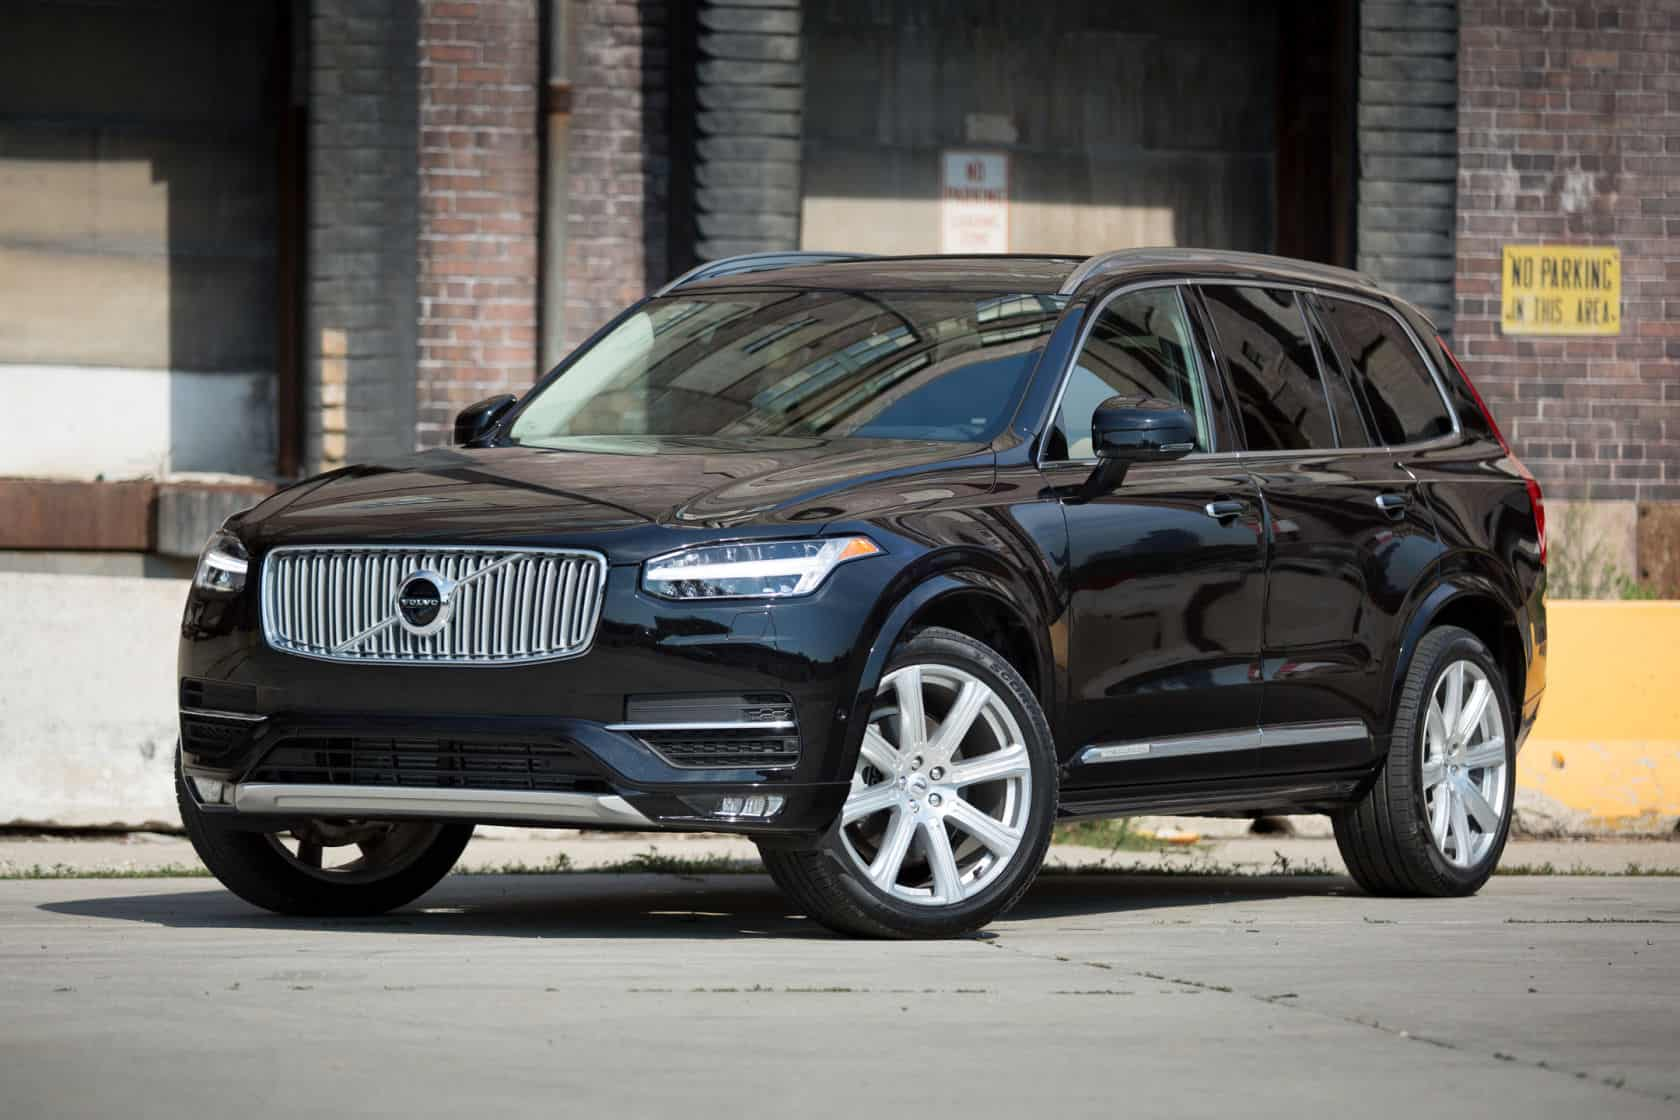 Volvo xc90 - Strongest Car Ever?